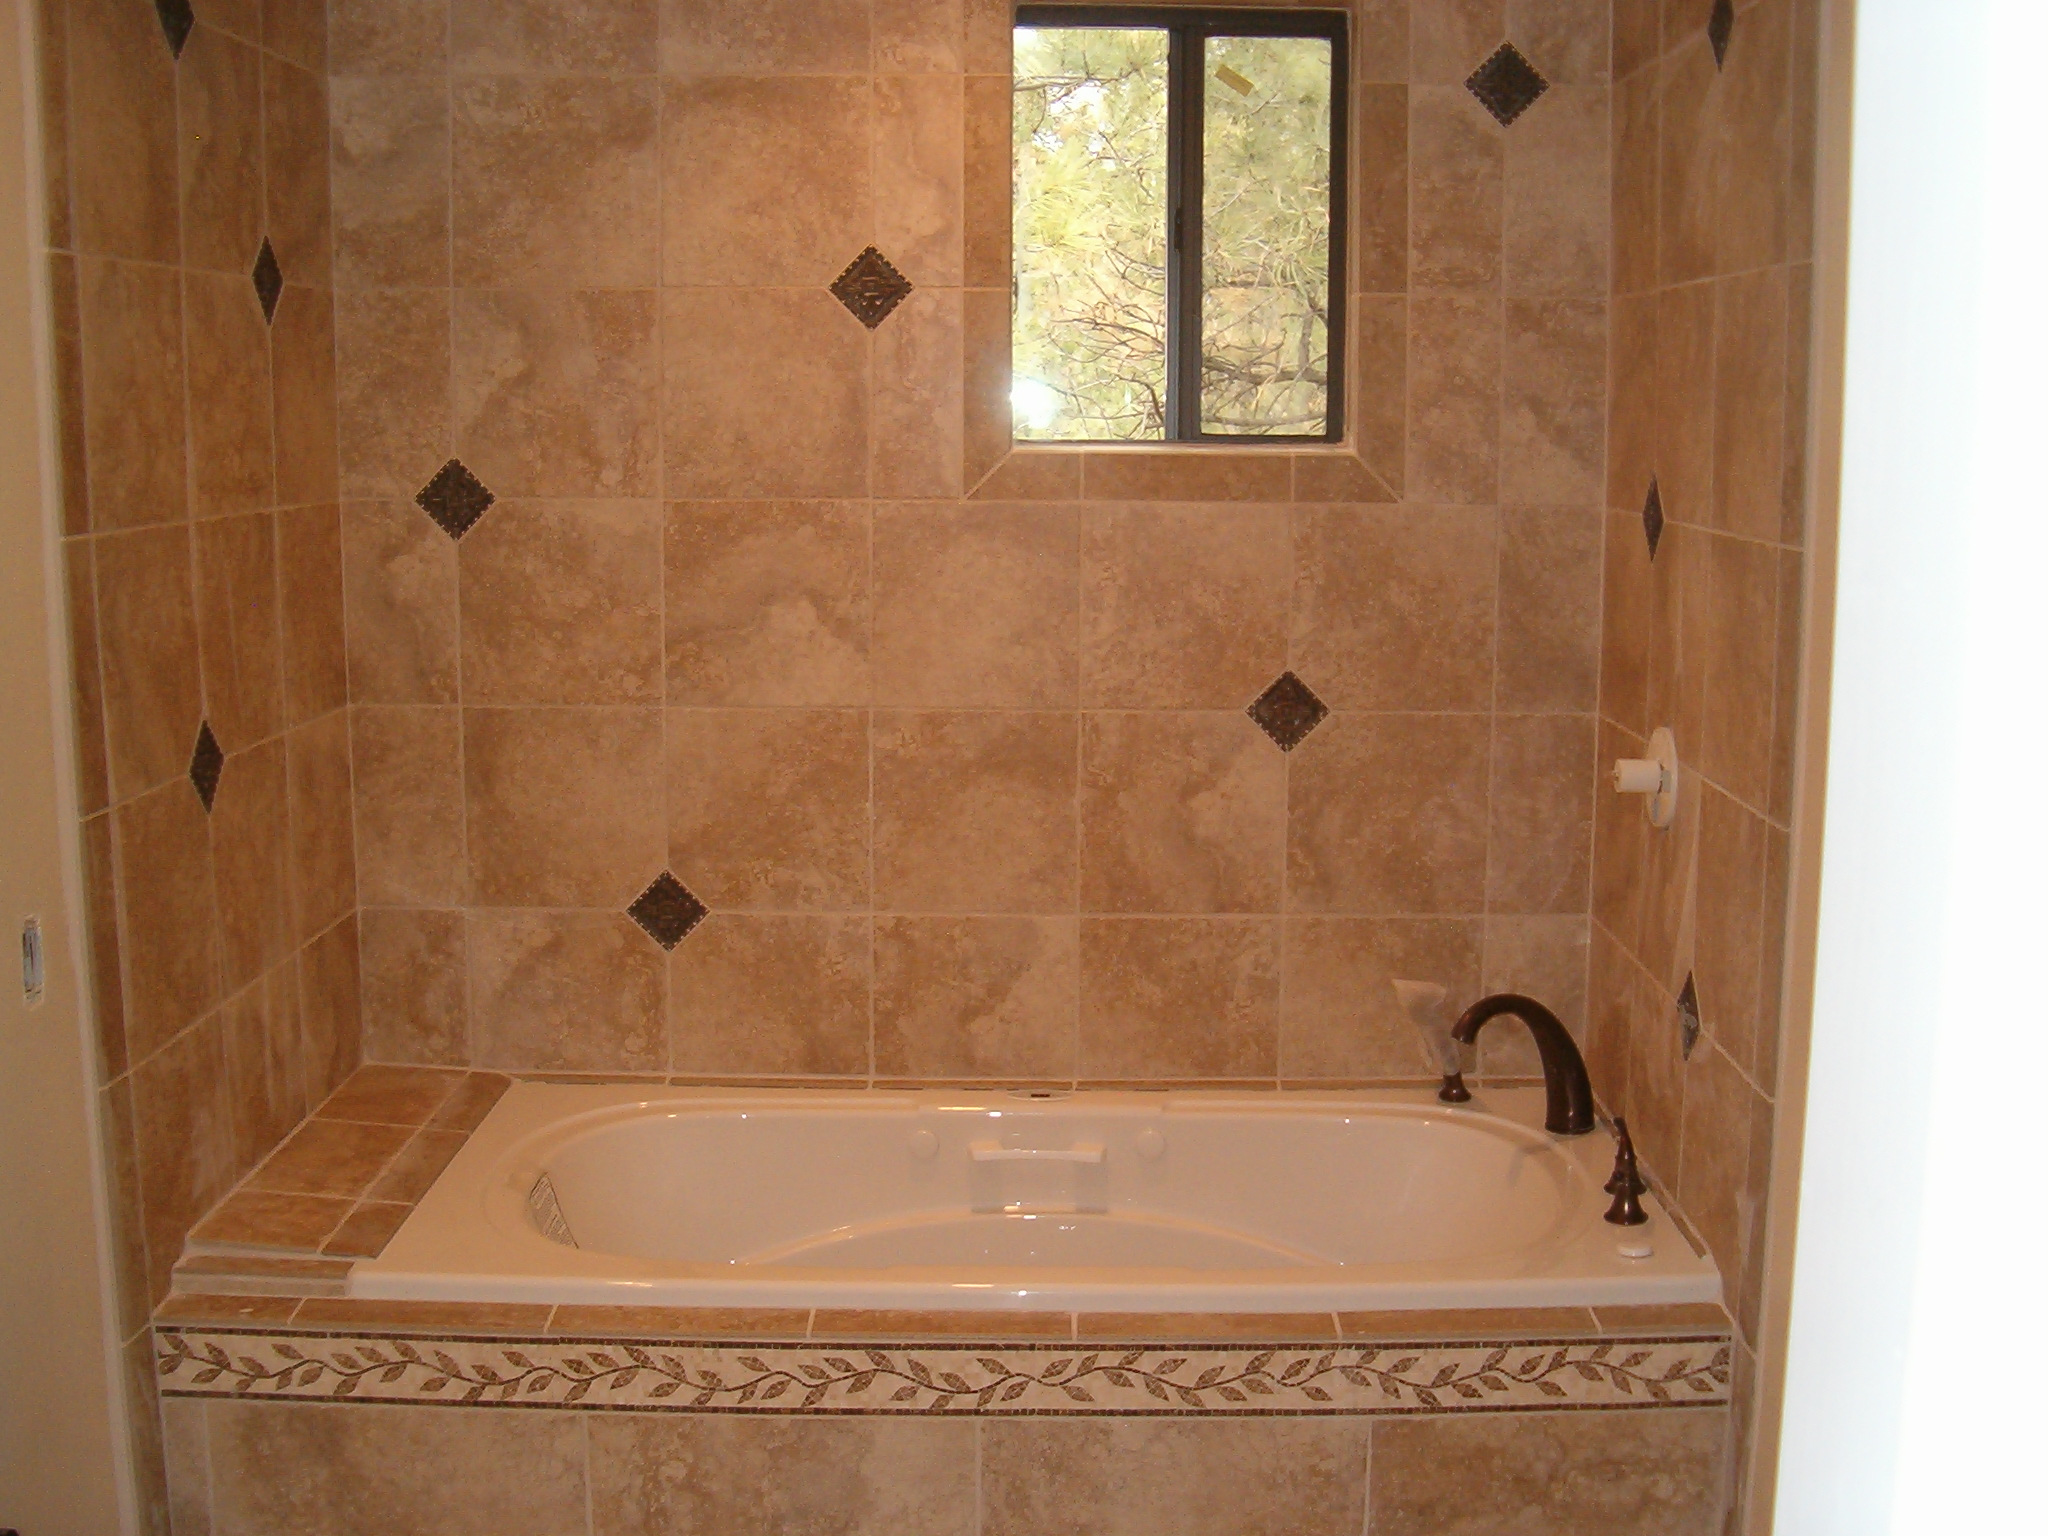 tiling-a-bathroom-wall-on-bathroom-tub-diamond-tile-wall